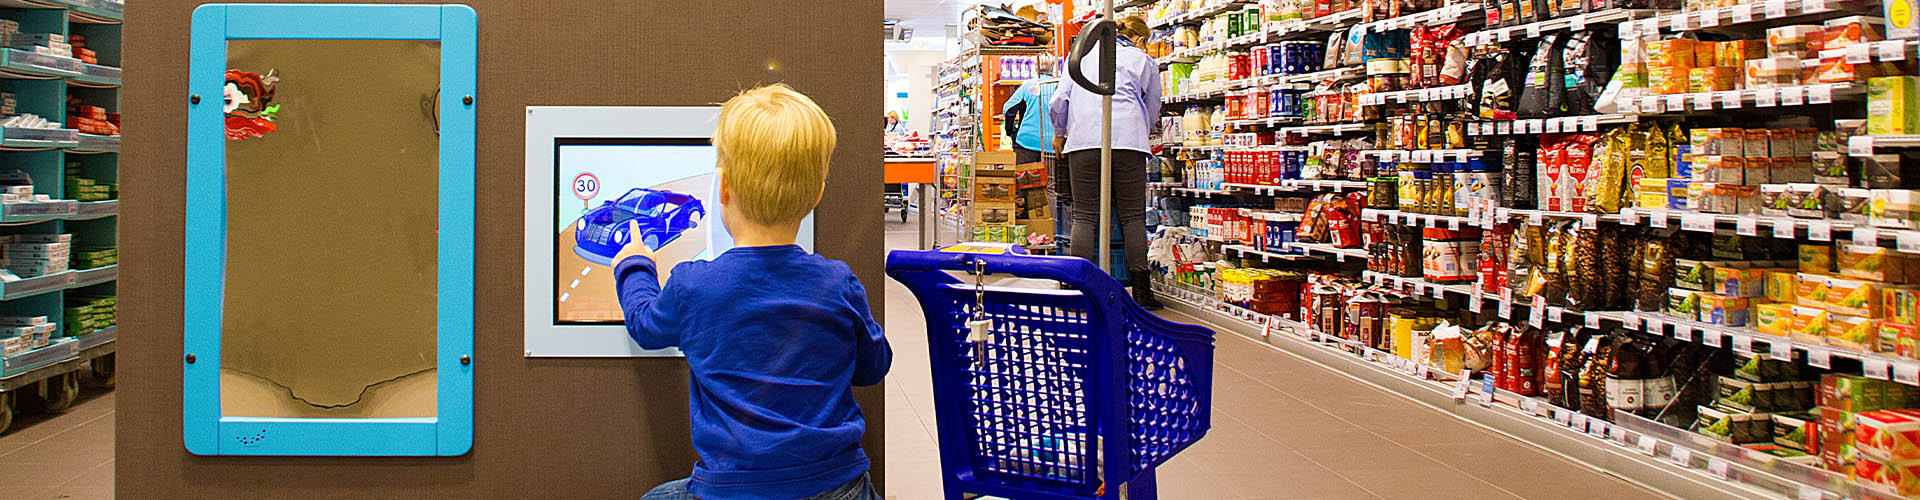 this image shows a kids corner in the AH supermarket